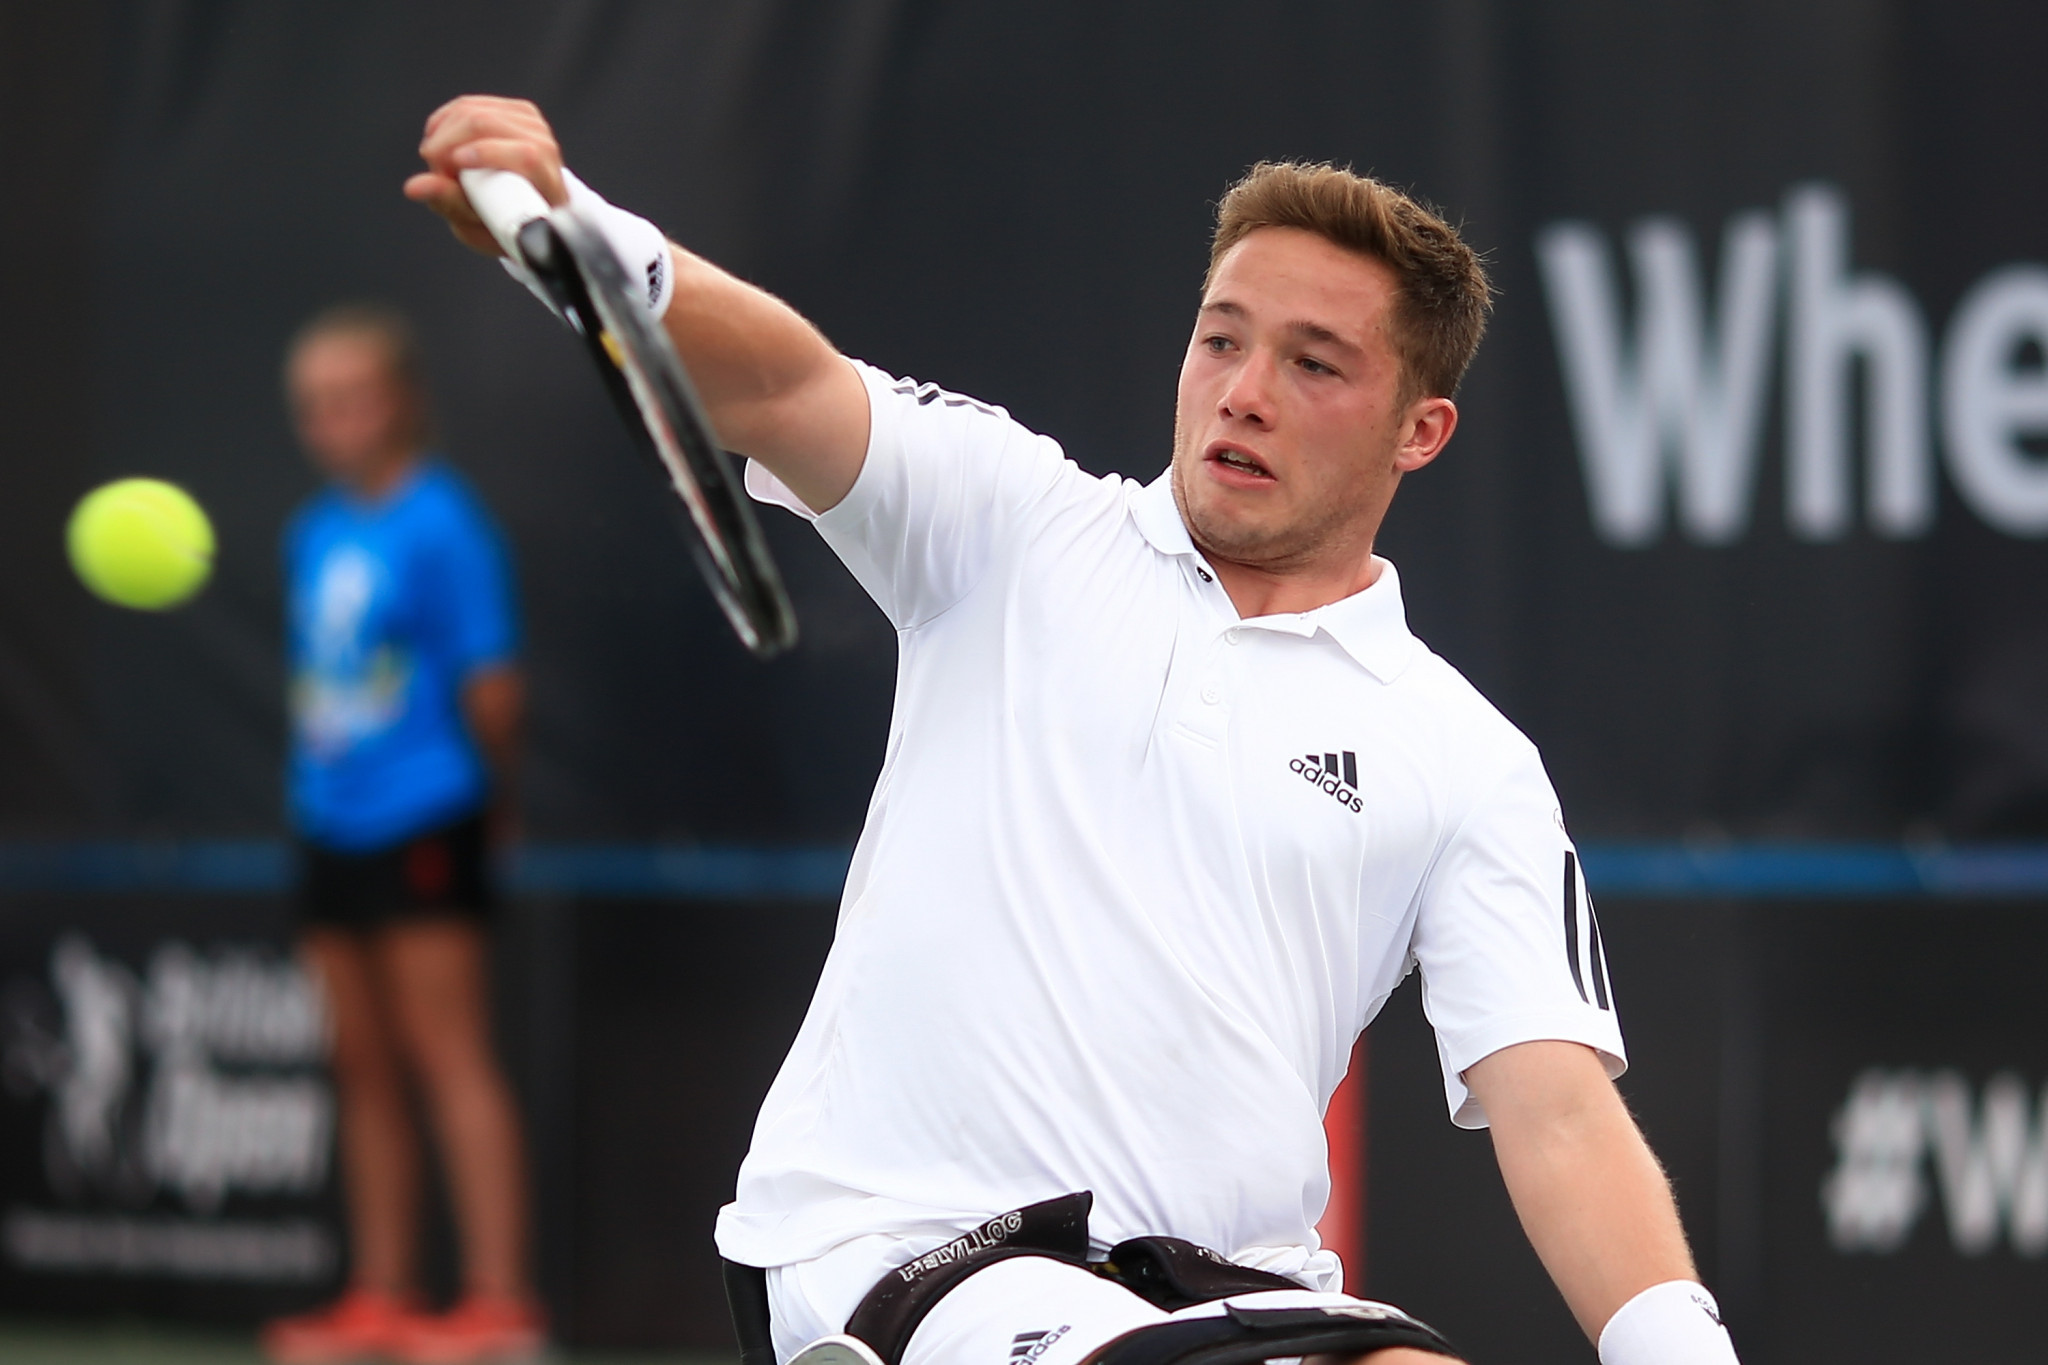 Britain's Alfie Hewett warmed up for the US Open by winning the men's singles title at the USTA Championships in St Louis ©Getty Images